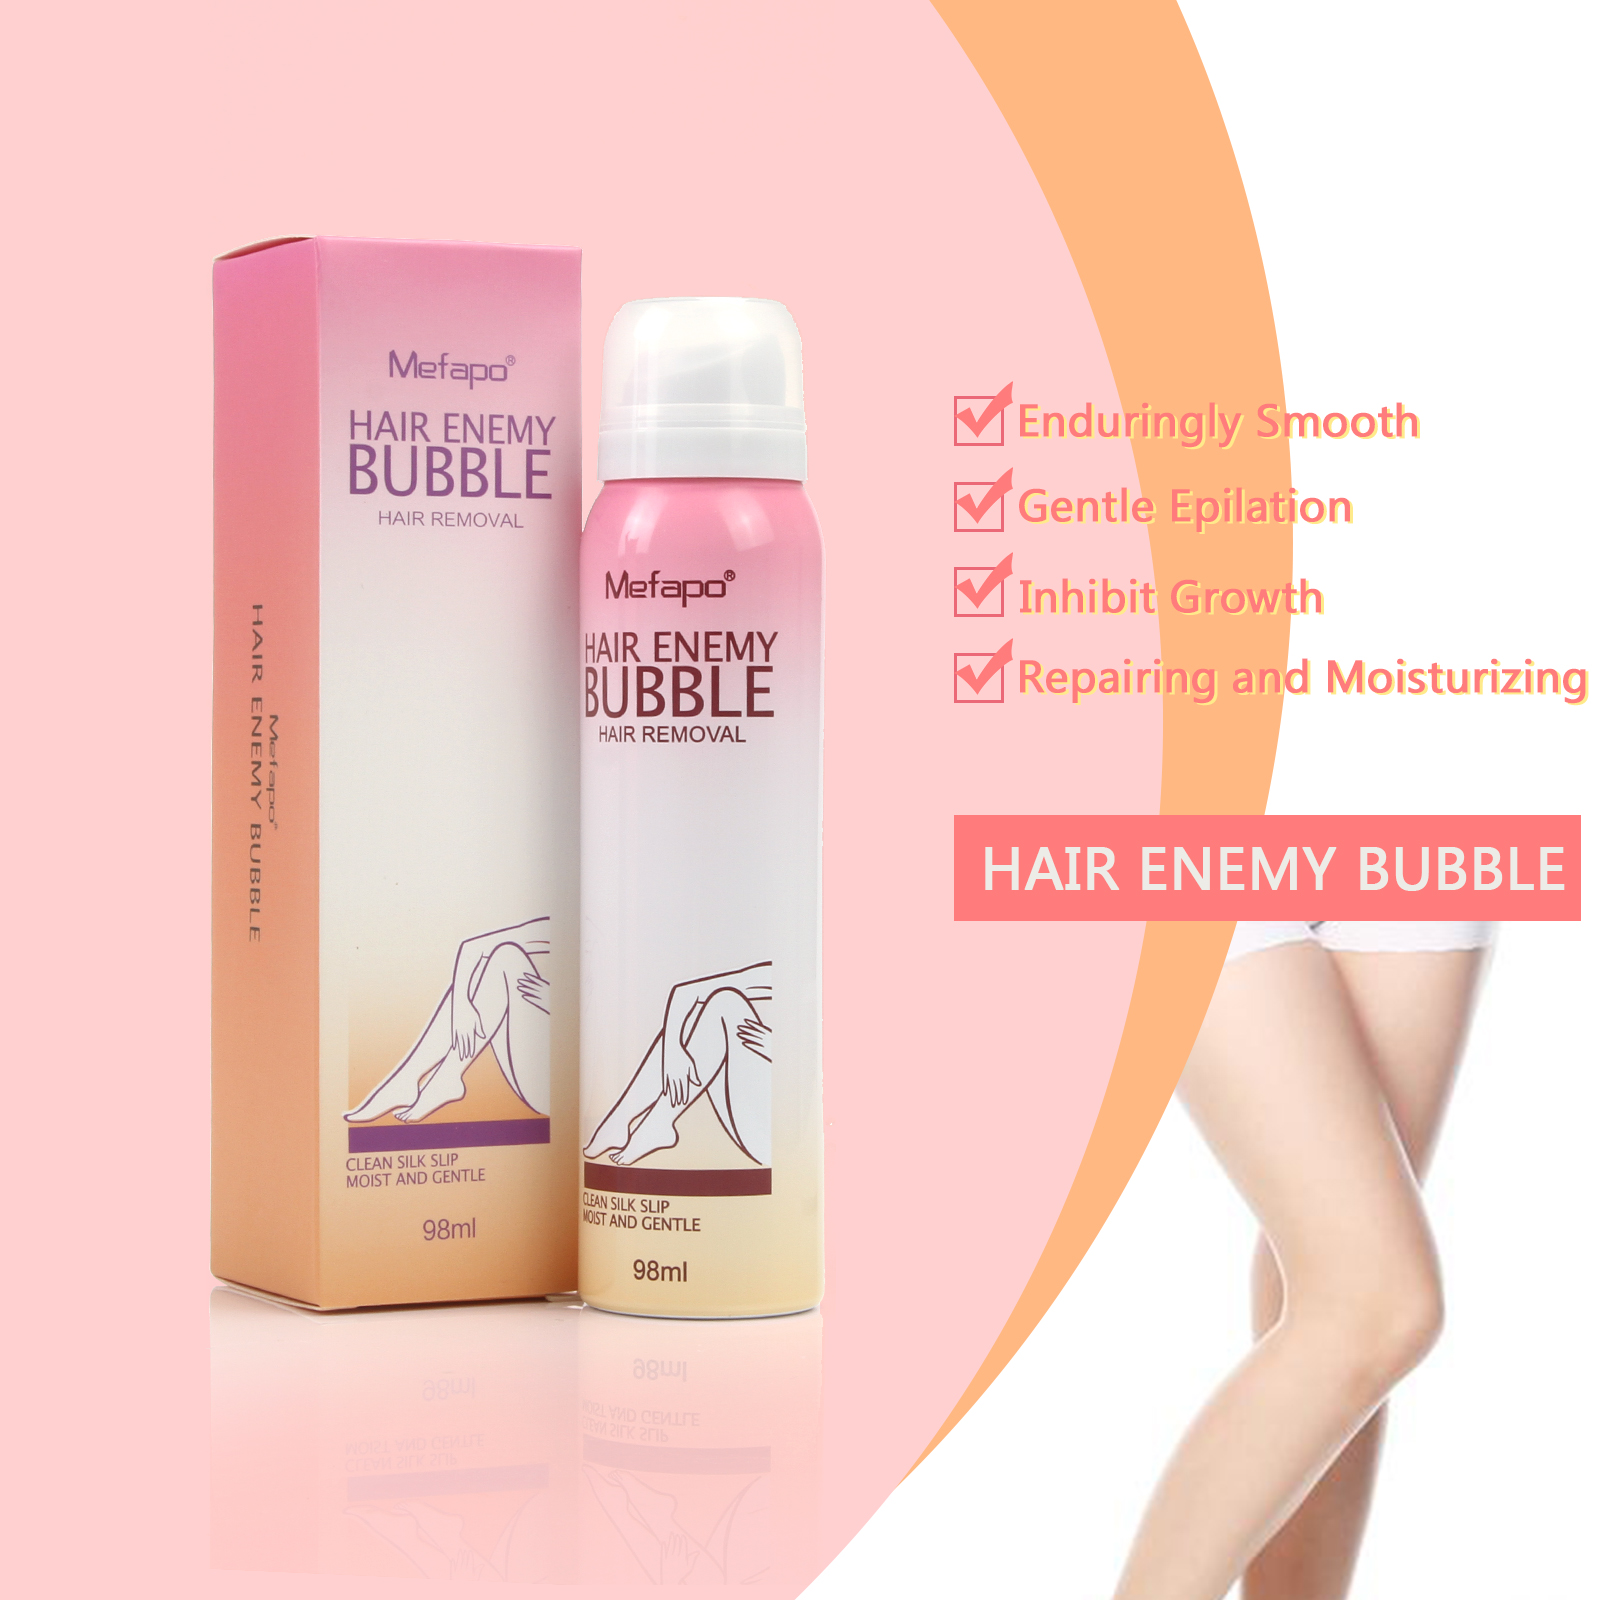 Mefapo Spray Hair Enemy Bubble Away Painless Depilatory Cream